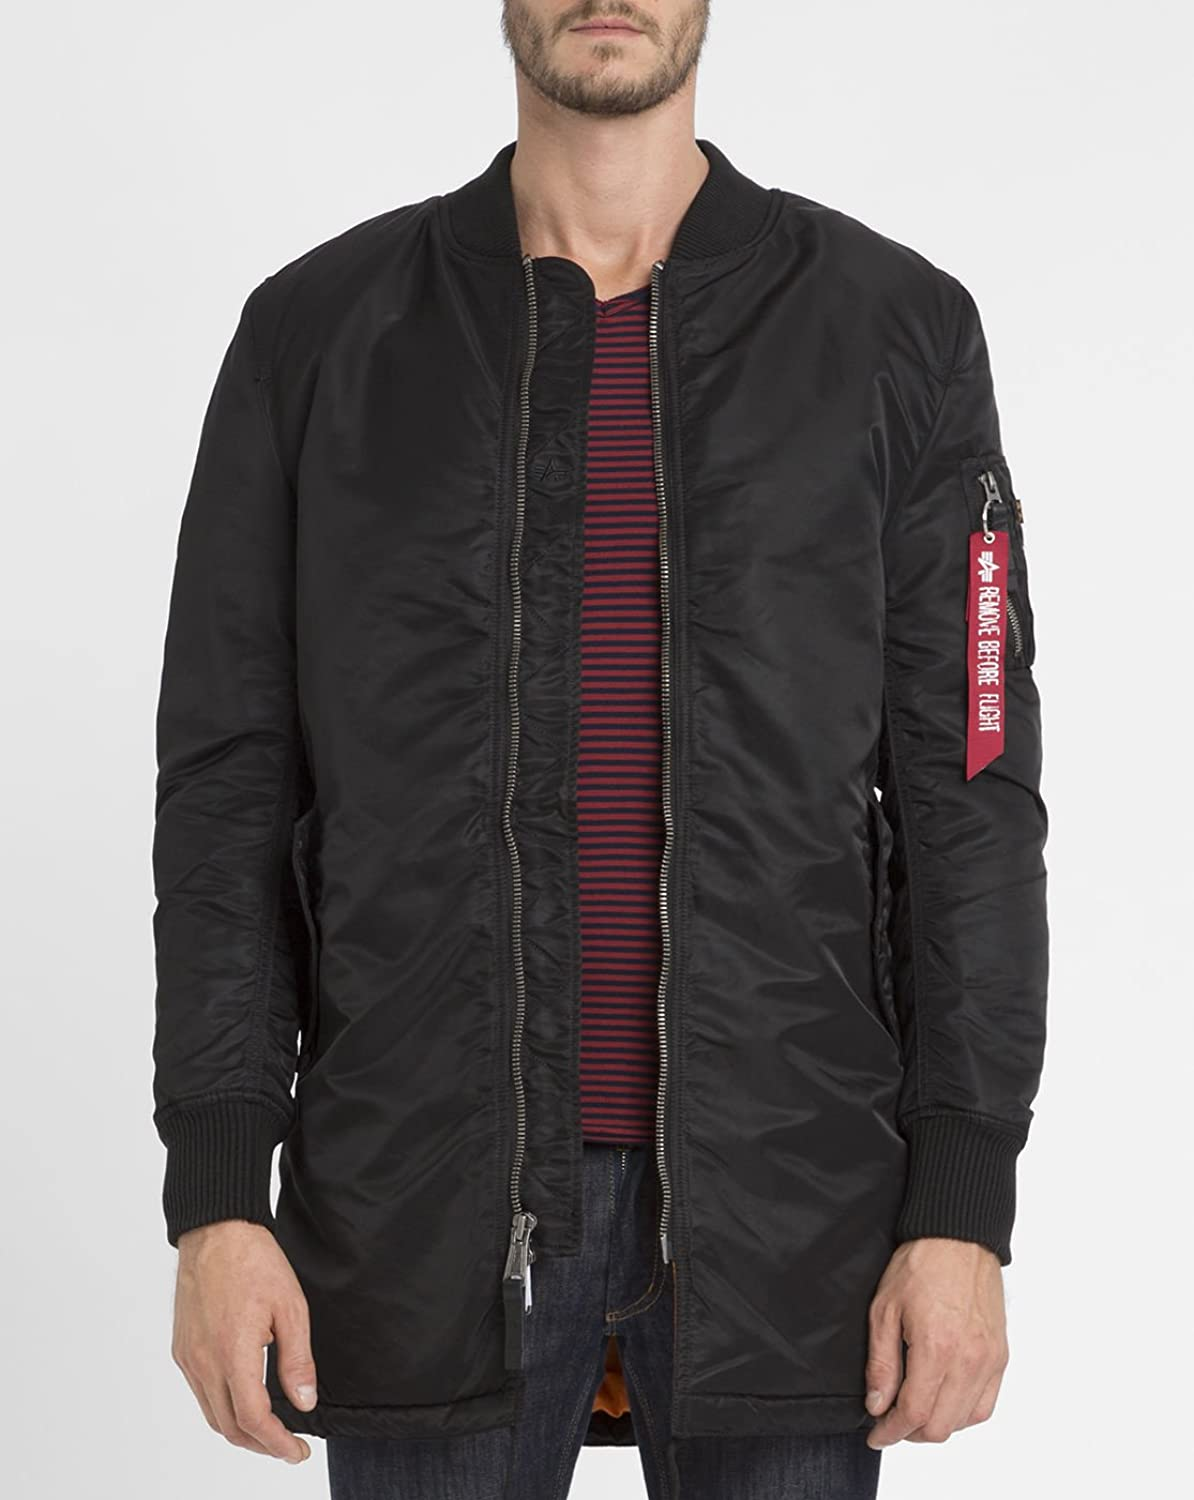 ALPHA INDUSTRIES - Jackets - Men - Black MA-1 Long Bomber Jacket for men